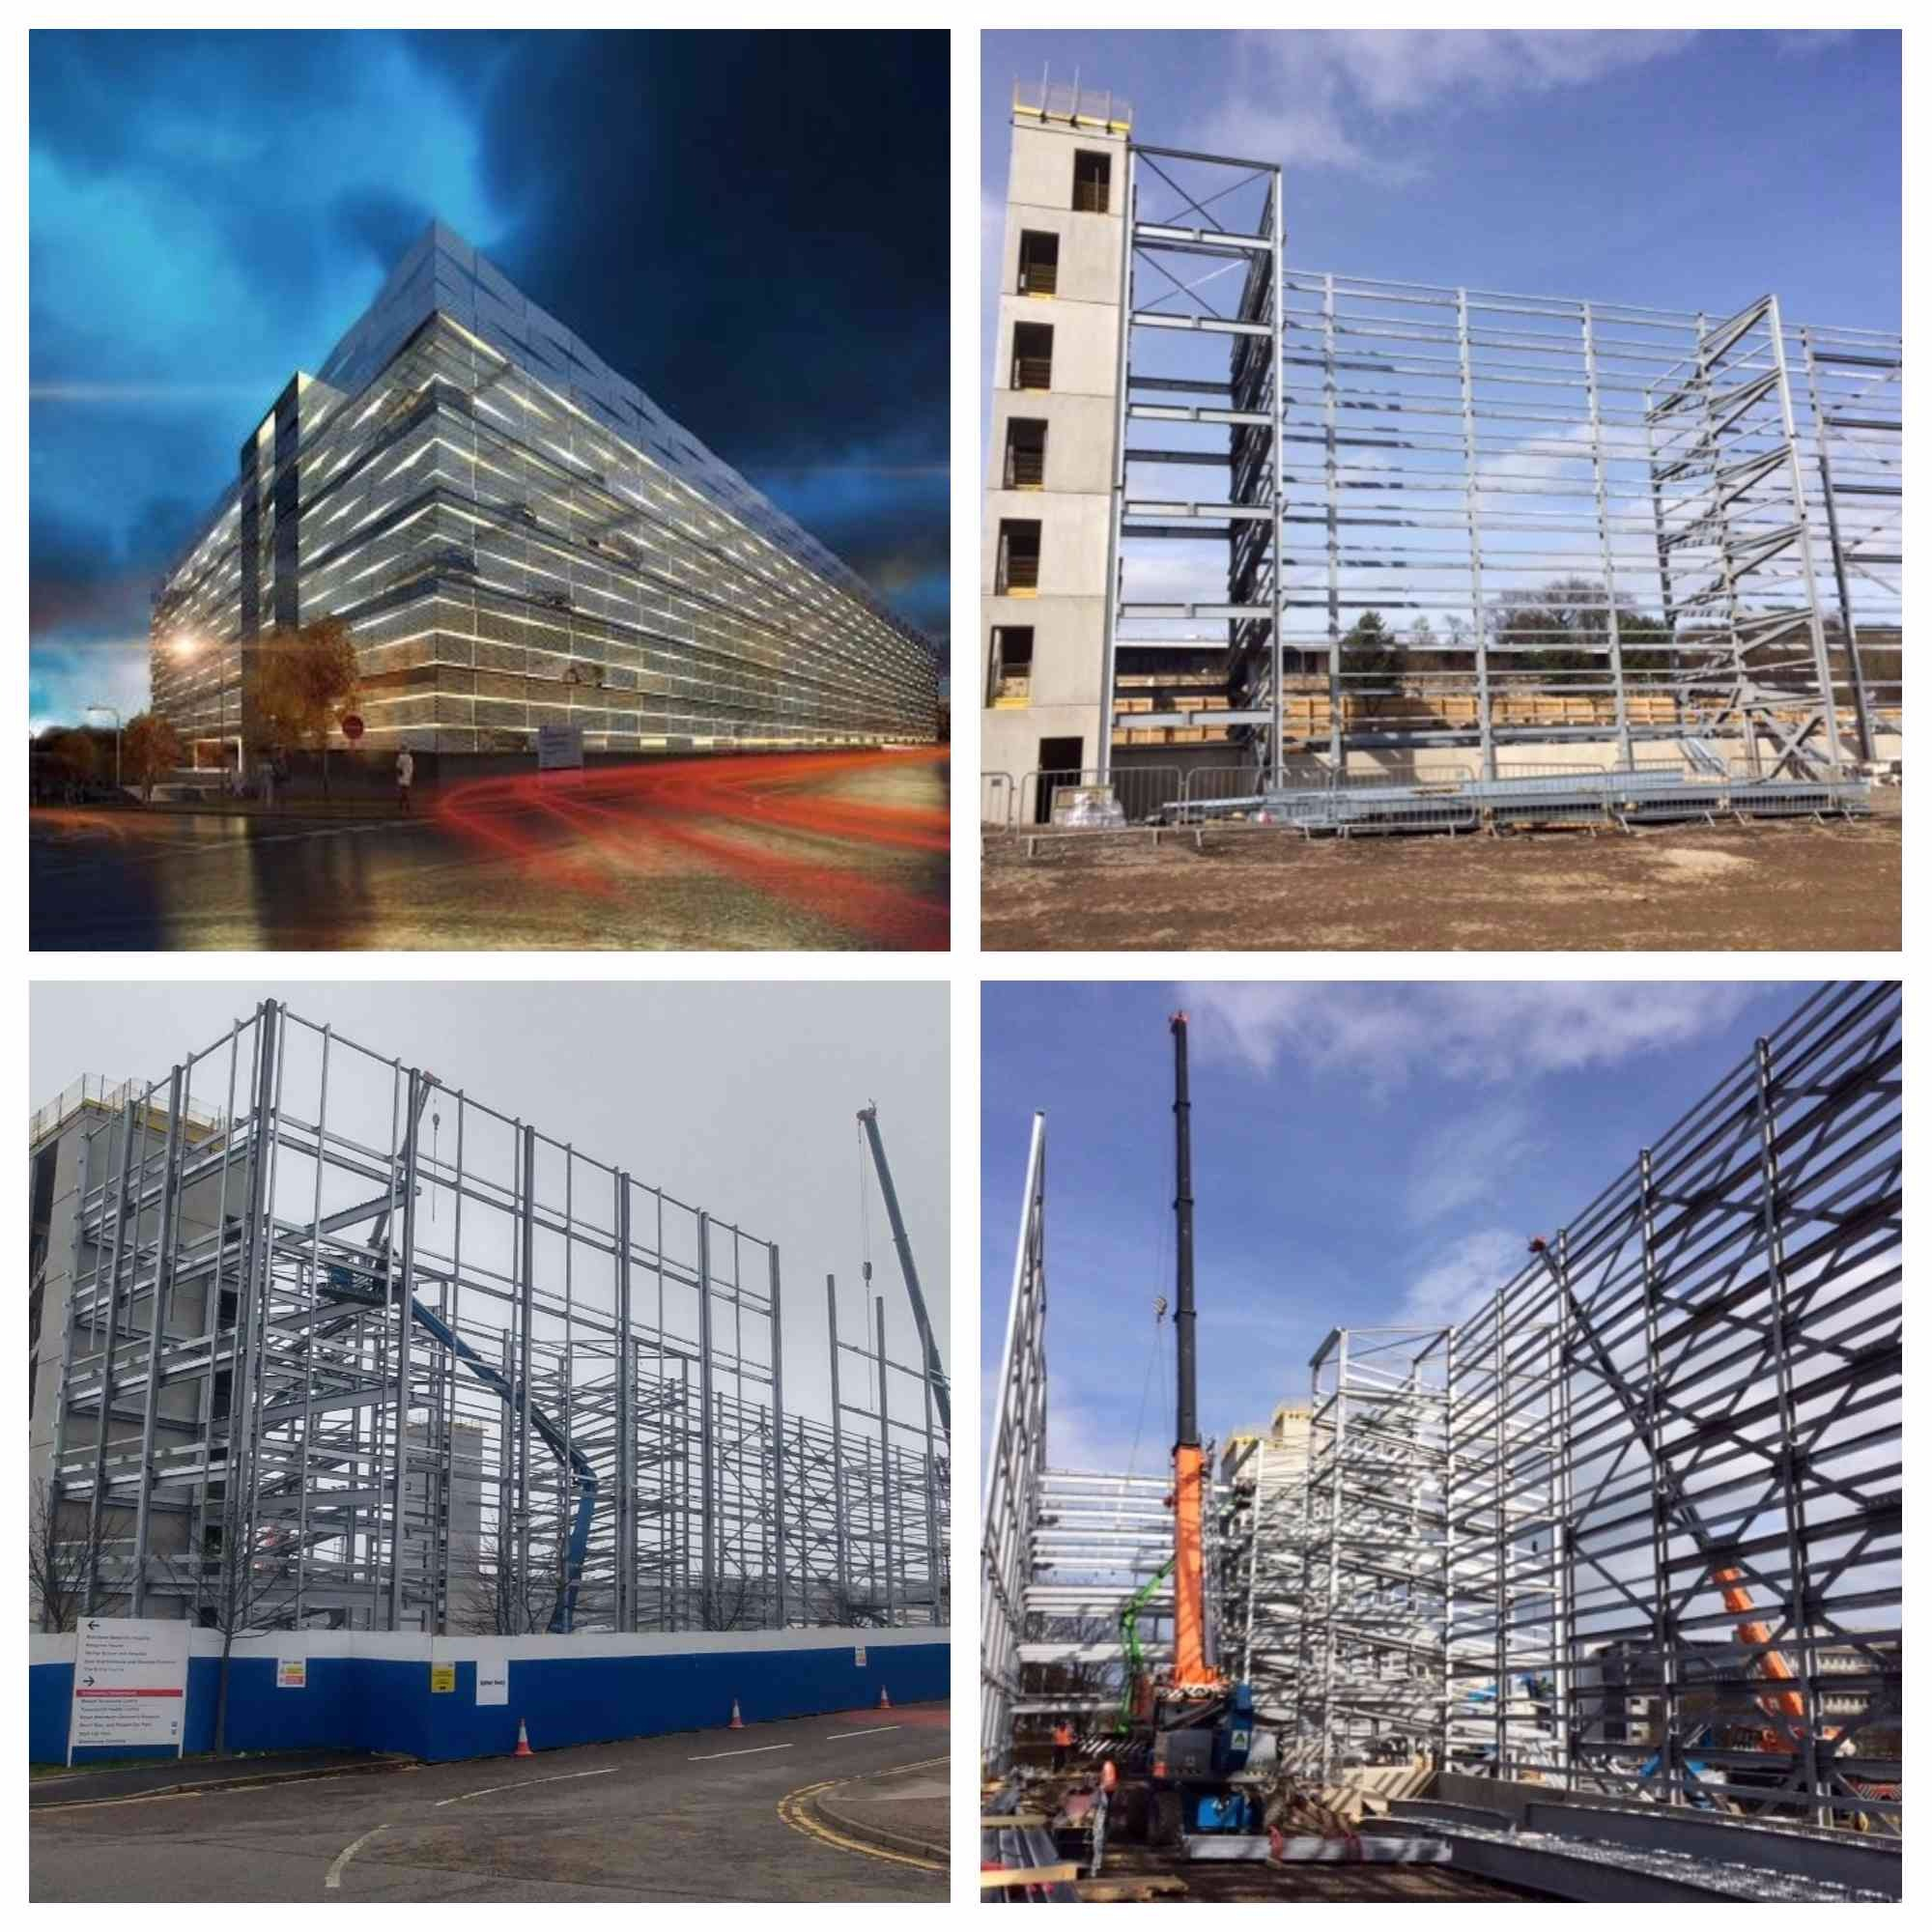 The new ARI car park in different stages through construction